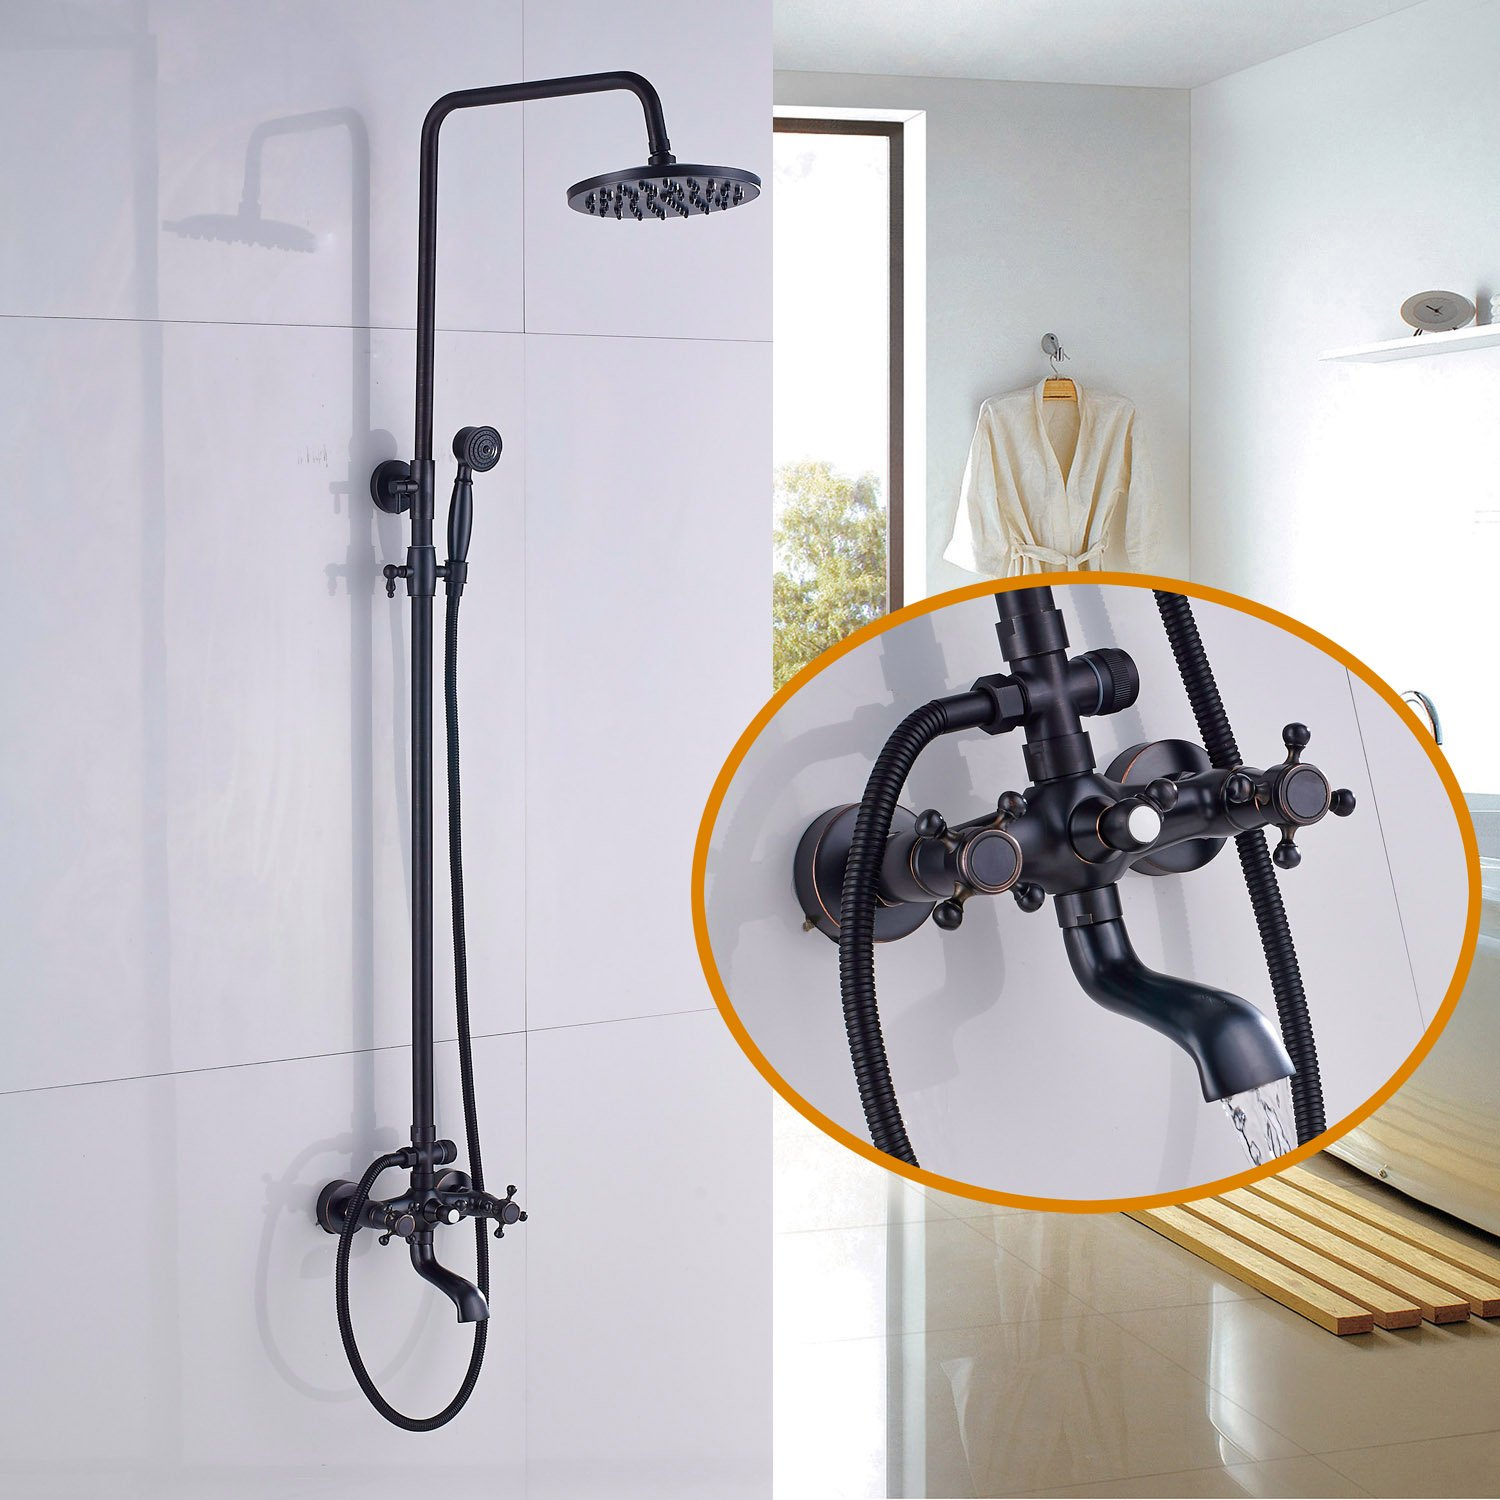 Rozin Wall Mounted Bath Rainfall Shower Set Tub Faucet with Handheld Spray Oil Rubbed Bronze by Rozin